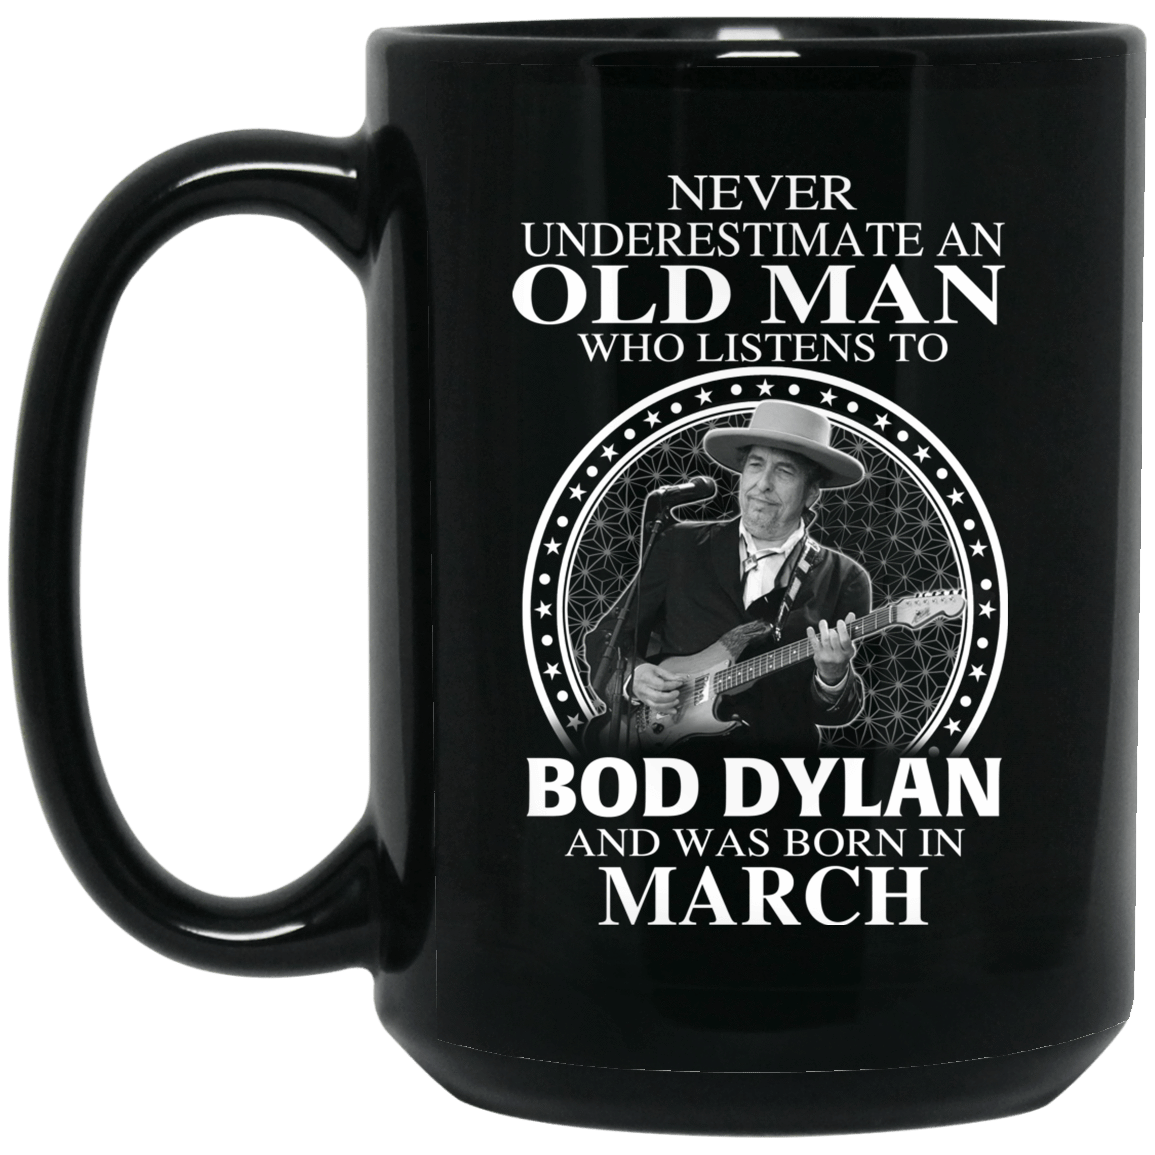 An Old Man Who Listens To Bob Dylan And Was Born In March Mug 1066-10182-76154392-49311 - Tee Ript